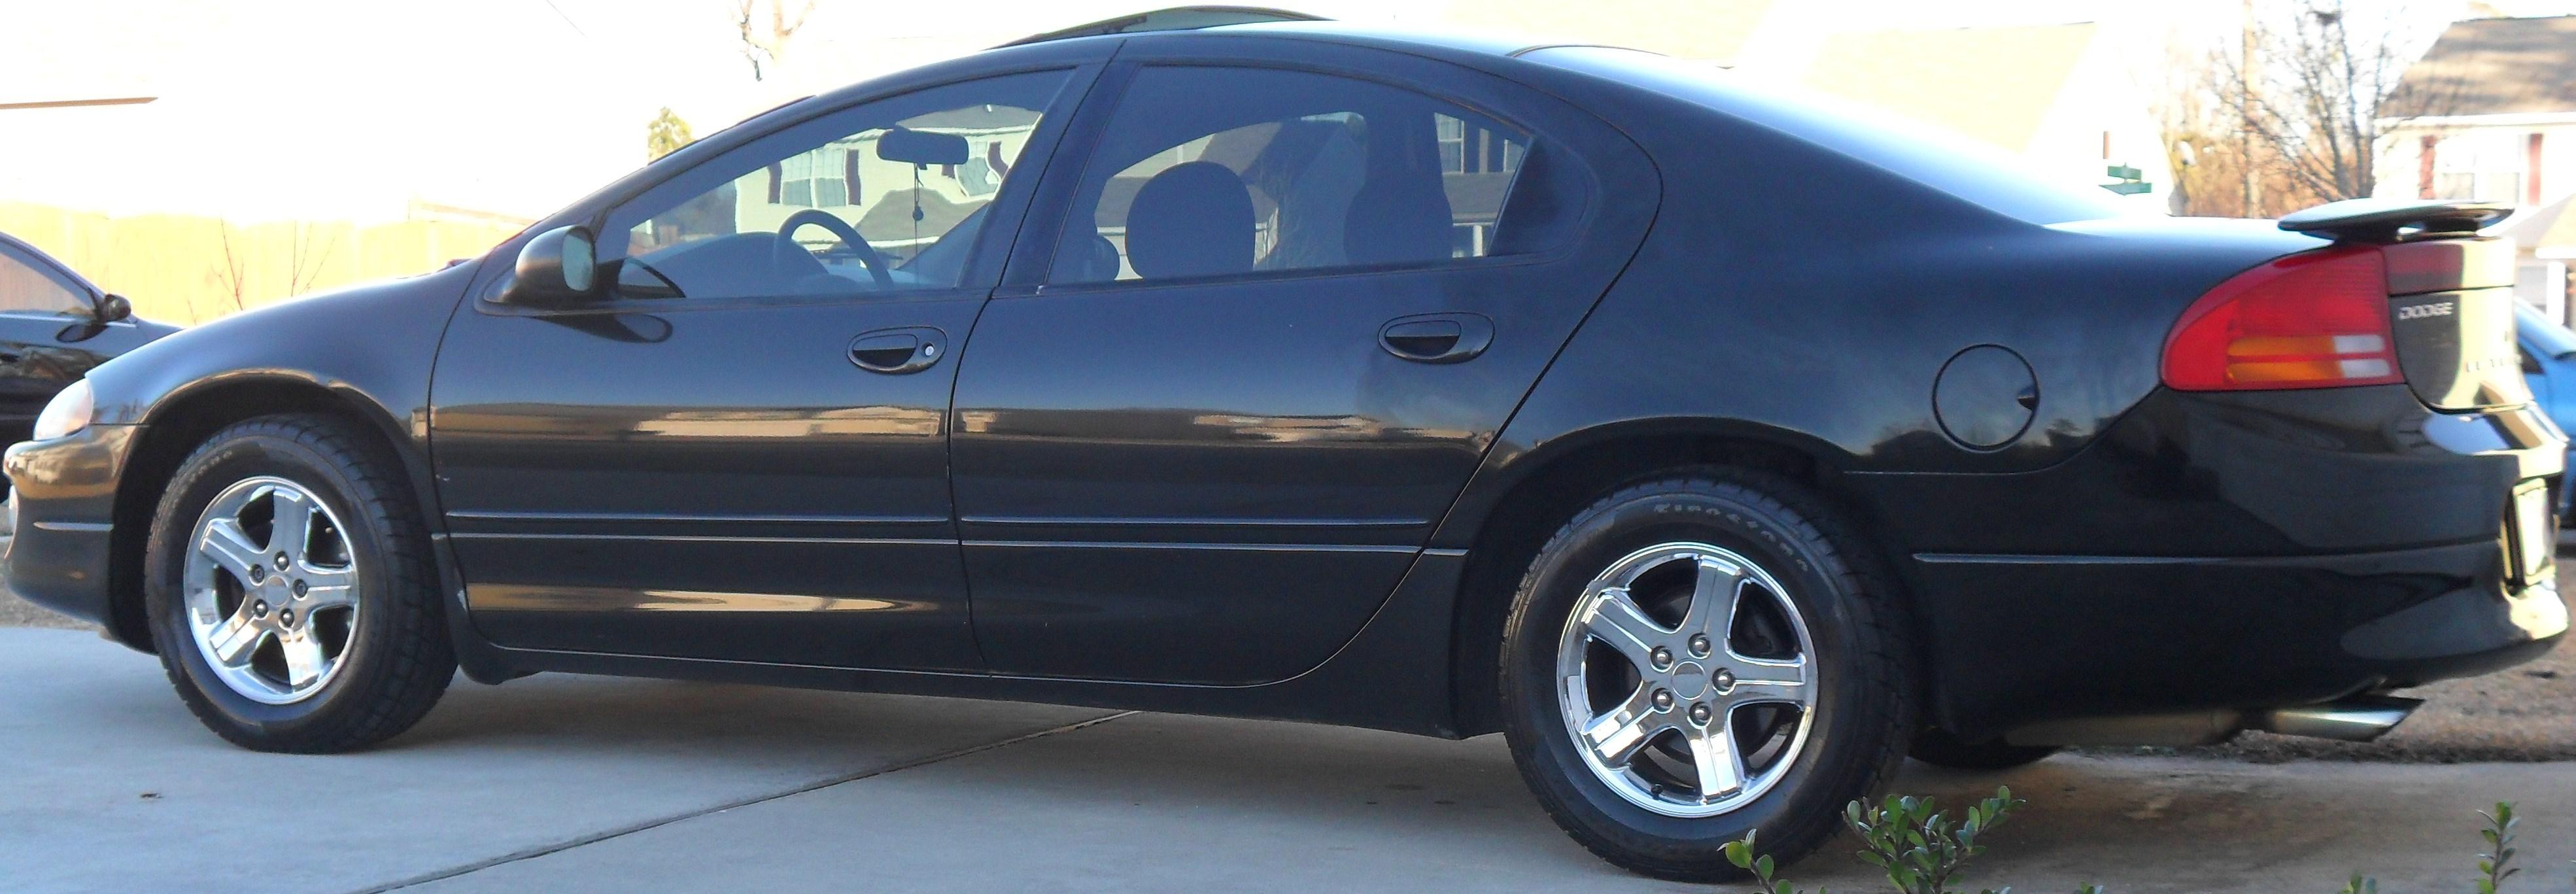 2004 Dodge Intrepid #15